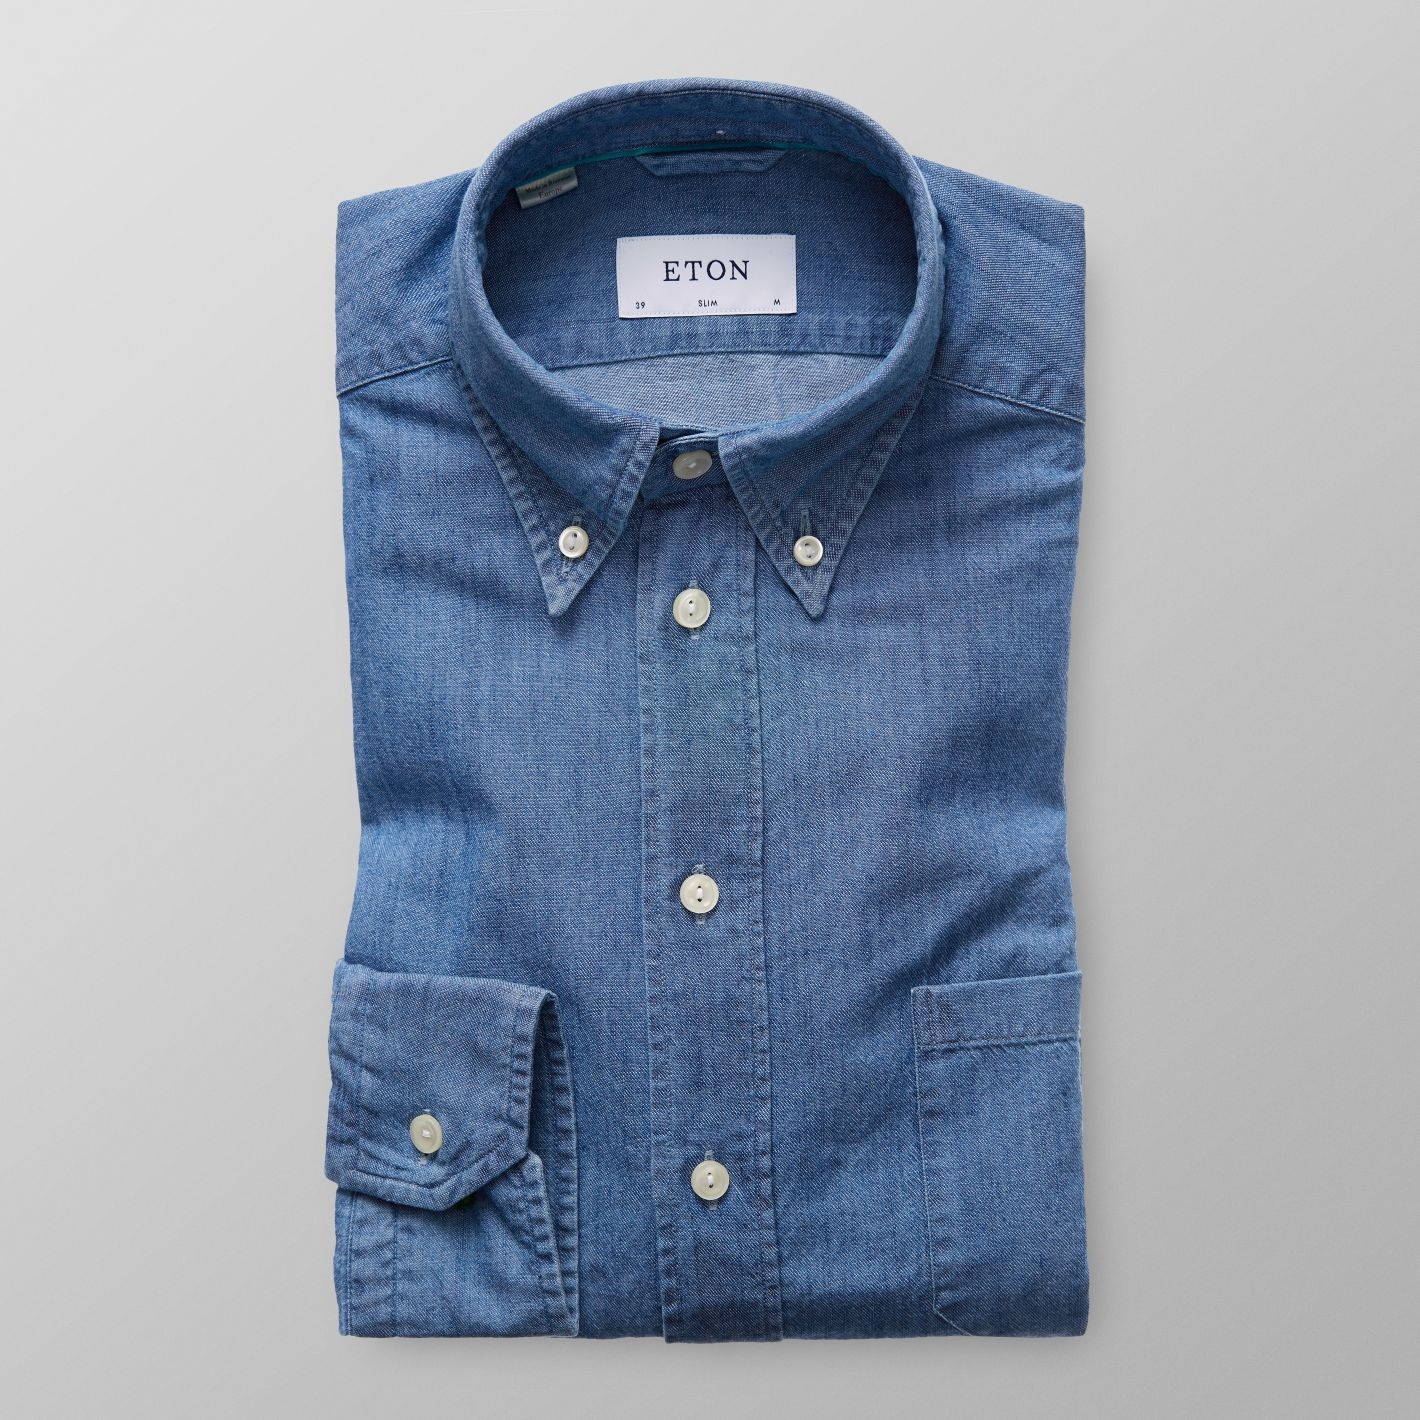 Denim Shirts That Will Let You Own Any Smart Or Casual Occasion Denim Shirts That Will Let You Own Any Smart Or Casual Occasion new pics